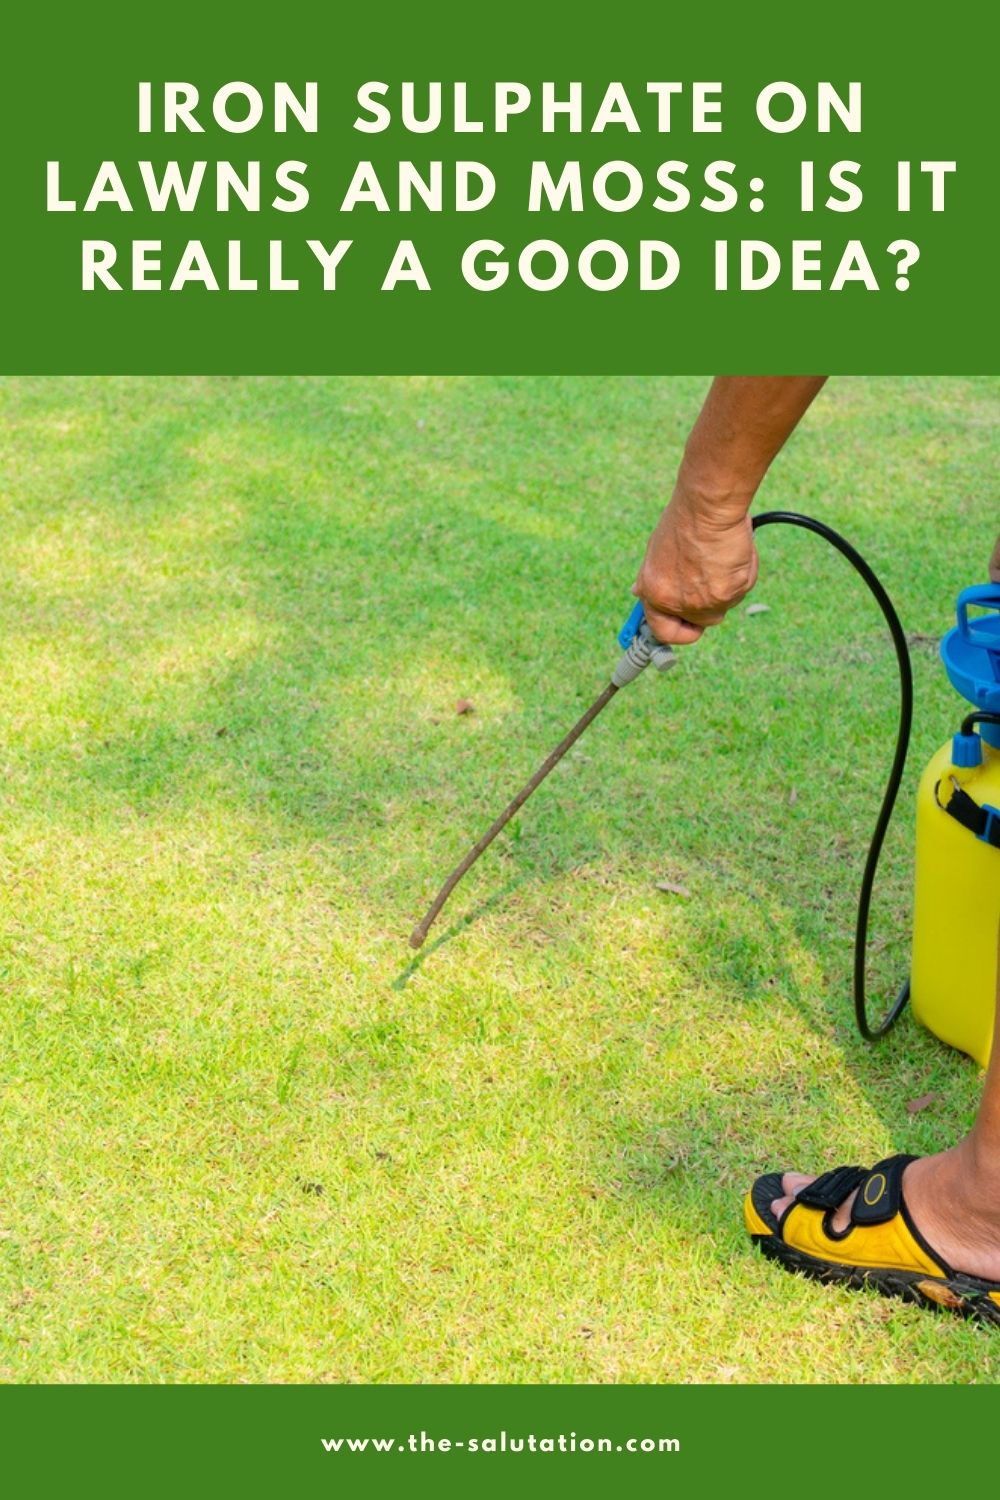 Iron Sulphate on Lawns and Moss Is It really a Good Idea 1